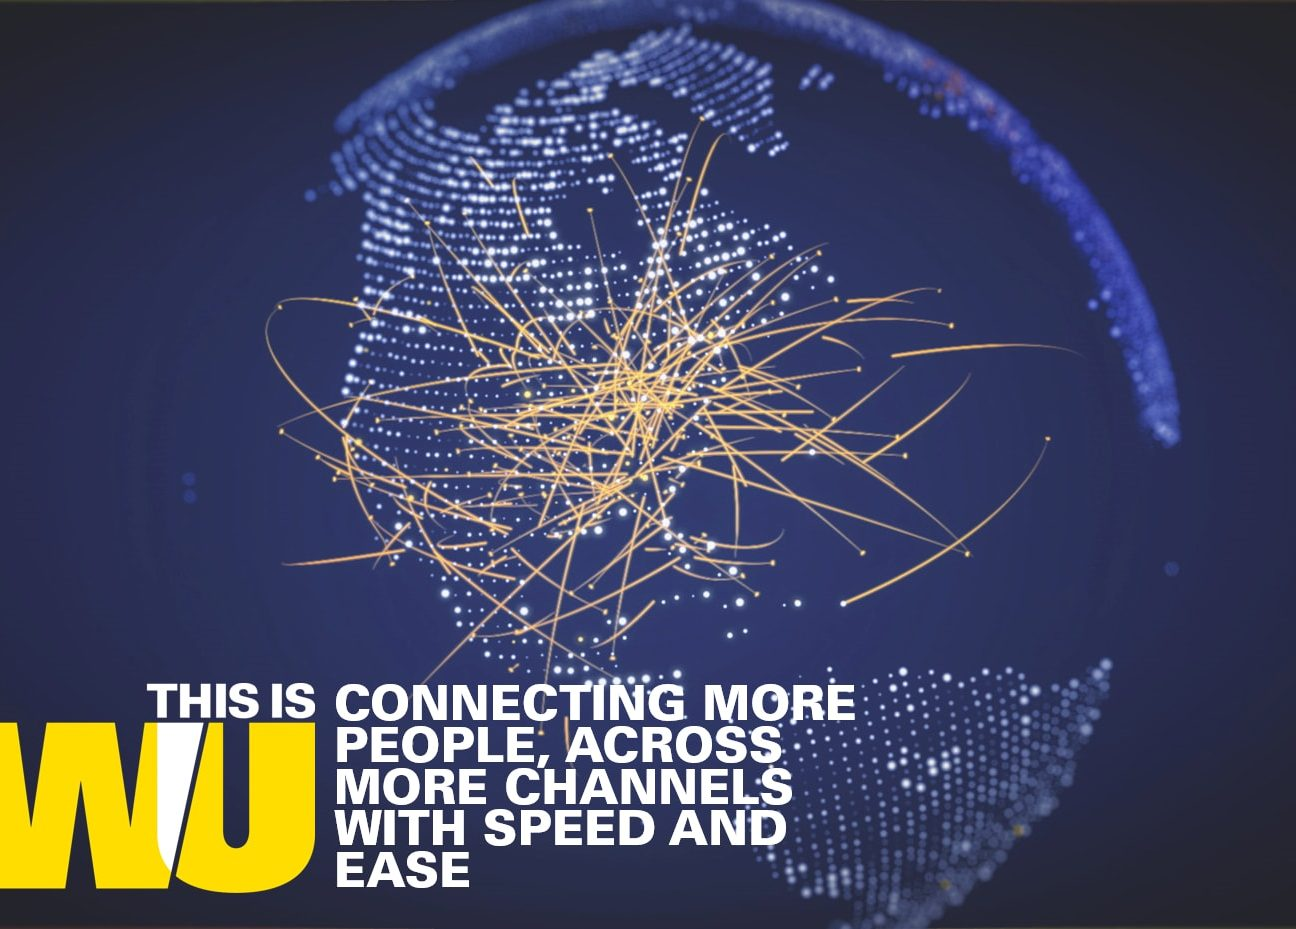 Western Union: Connecting more people across more channels with speed and ease